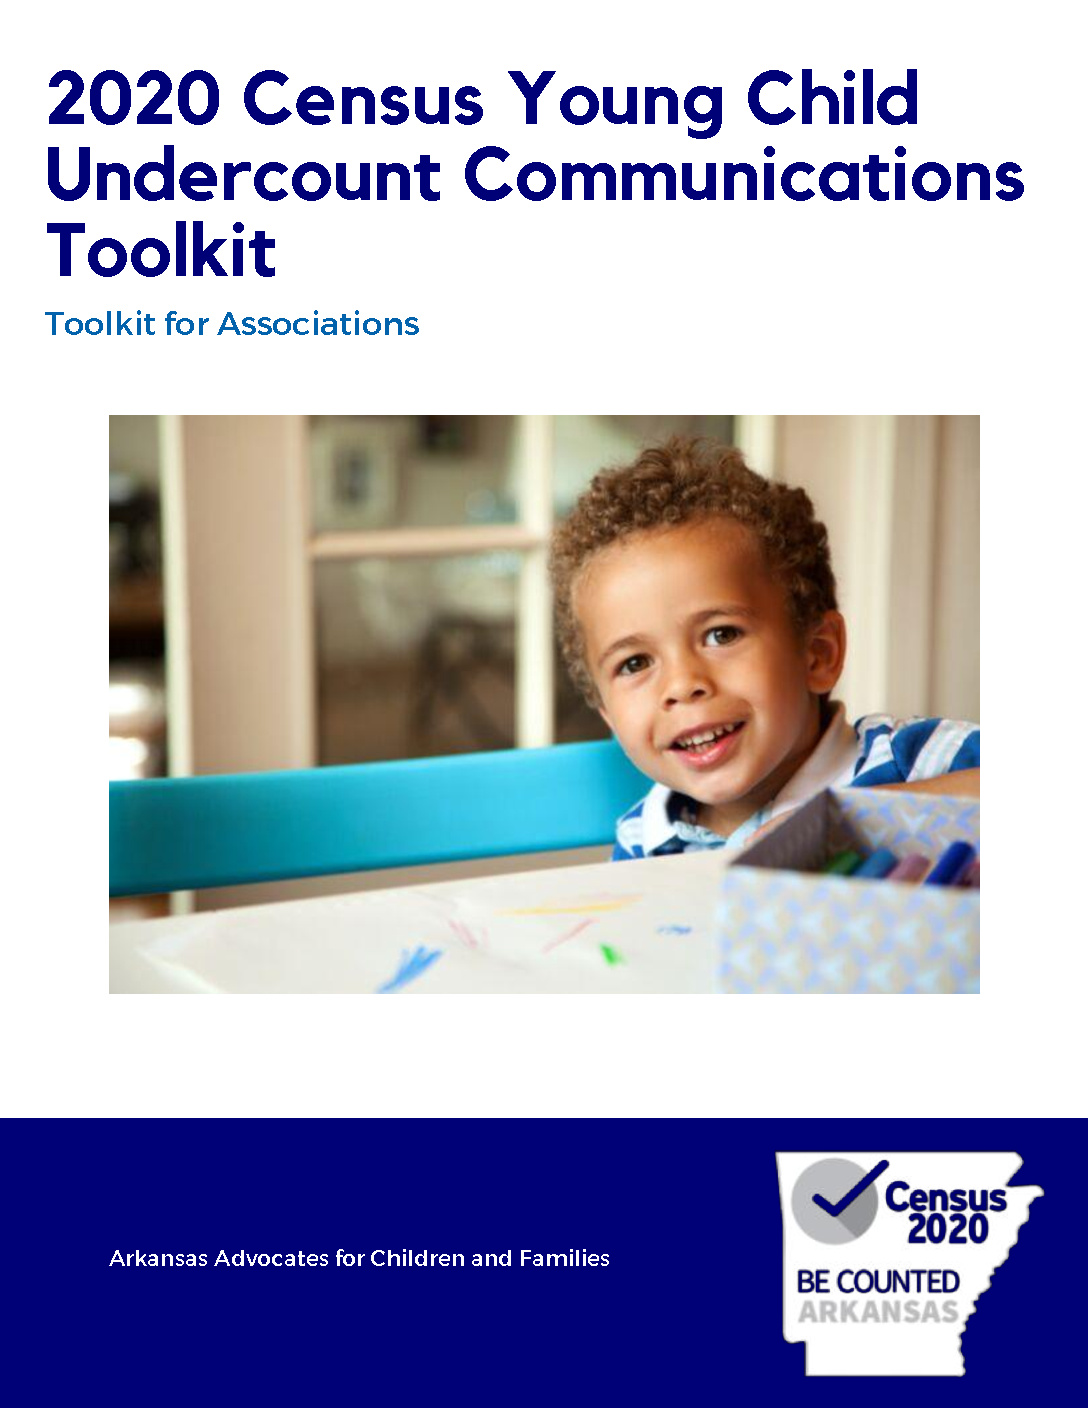 Arkansas Advocaates for Children and Families' Communication Toolkit